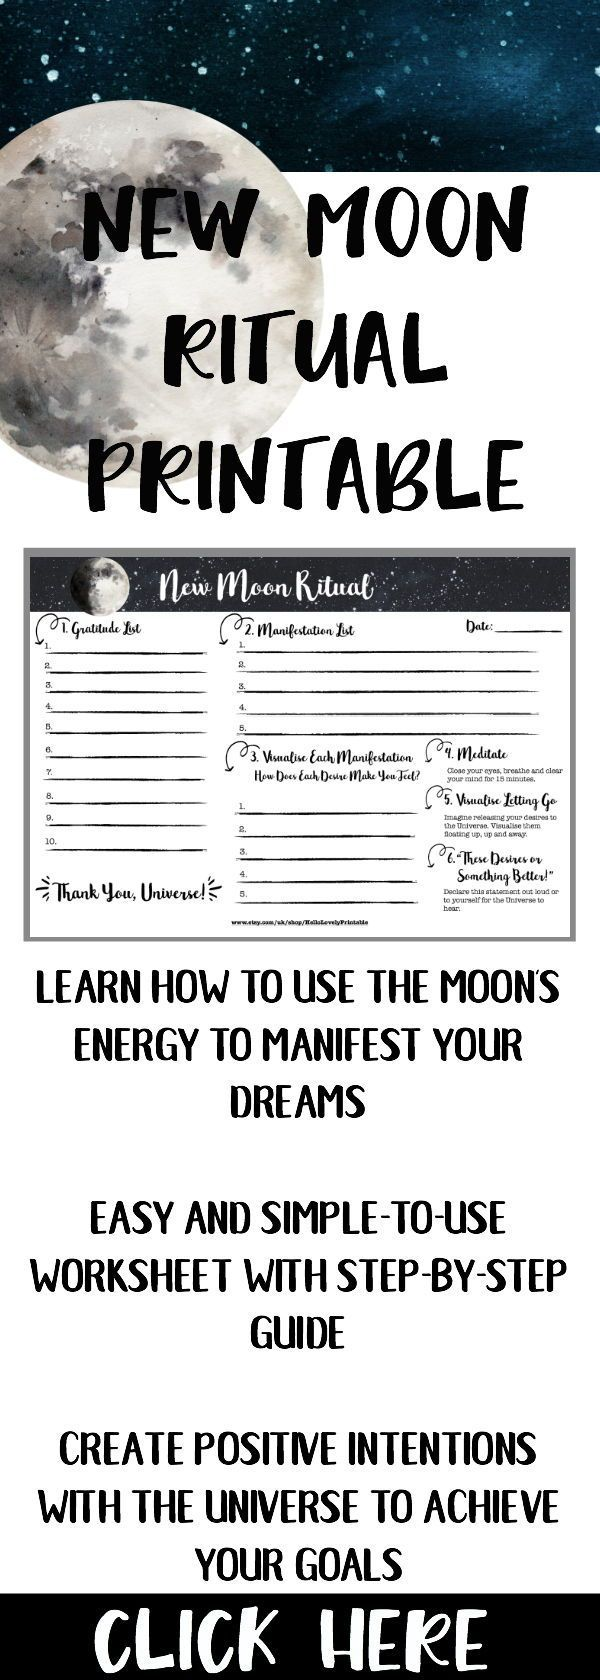 Printable New Moon Ritual, Law of Attraction Moon Planner, Moon Magic, Moon Manifesting, Lunar Cycle